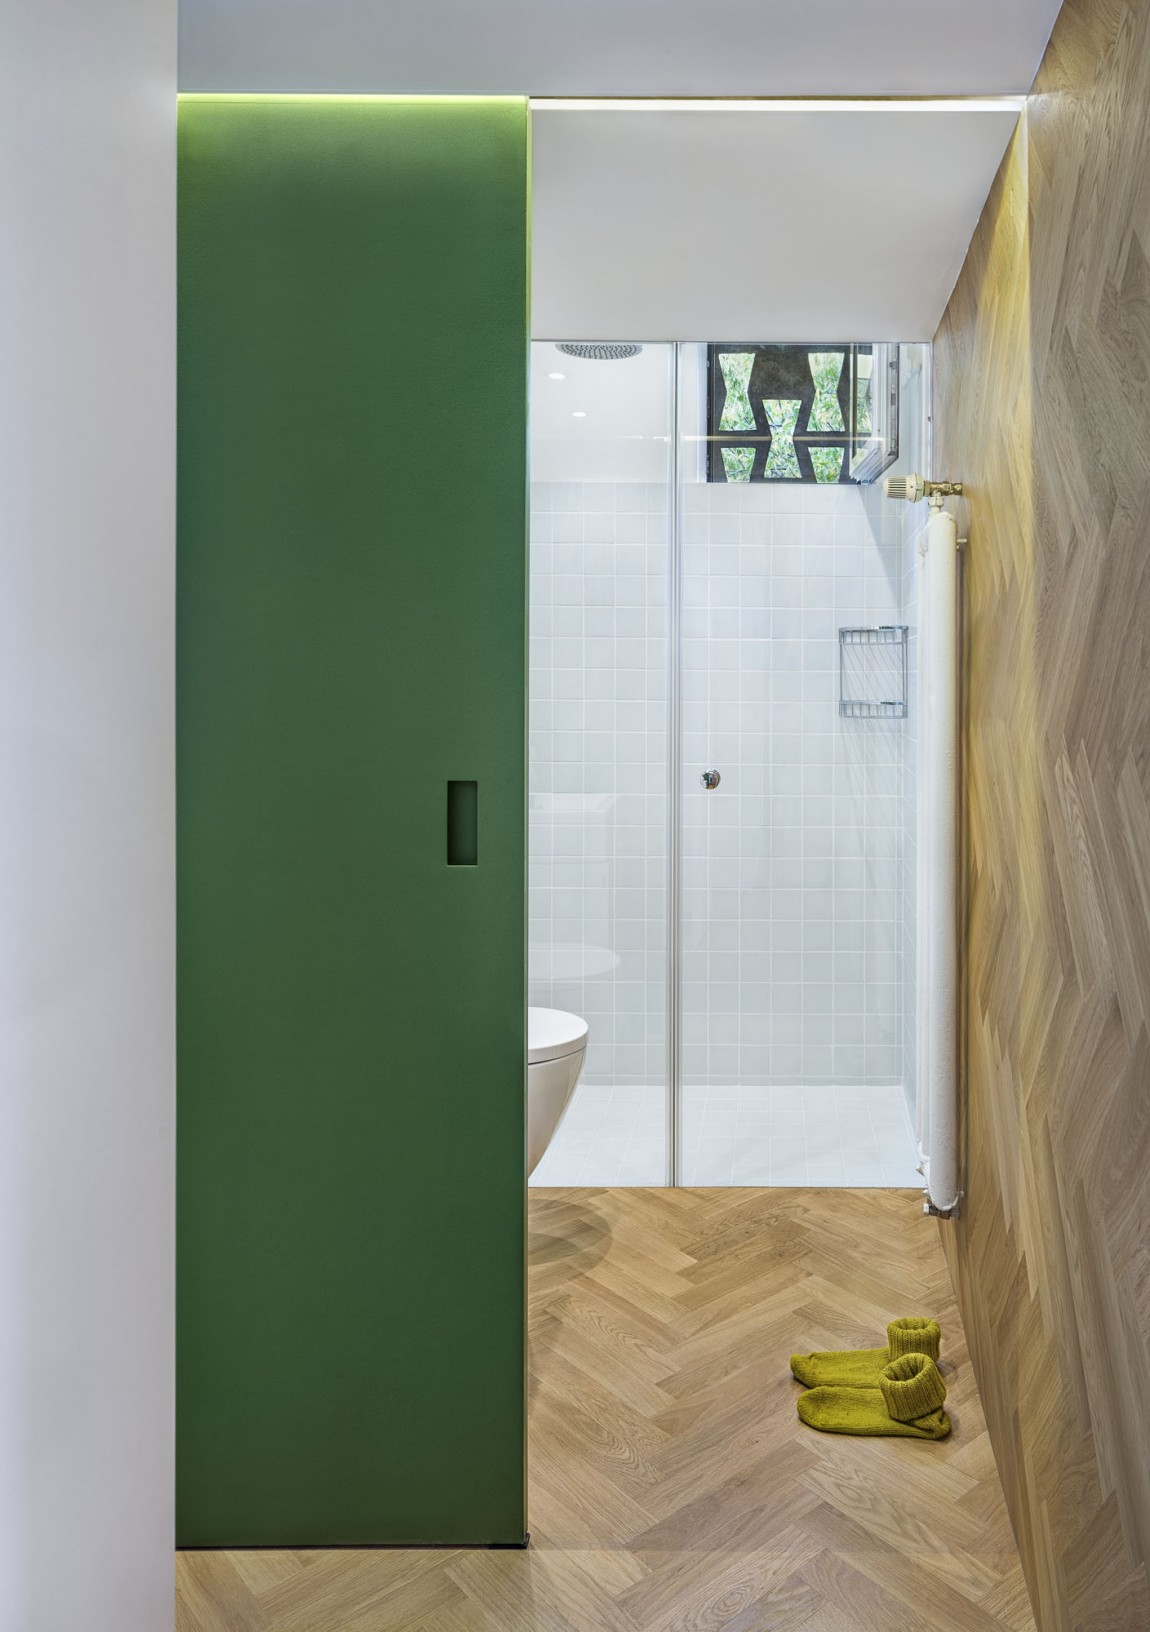 Apartment H01 en-suite bathroom parquet